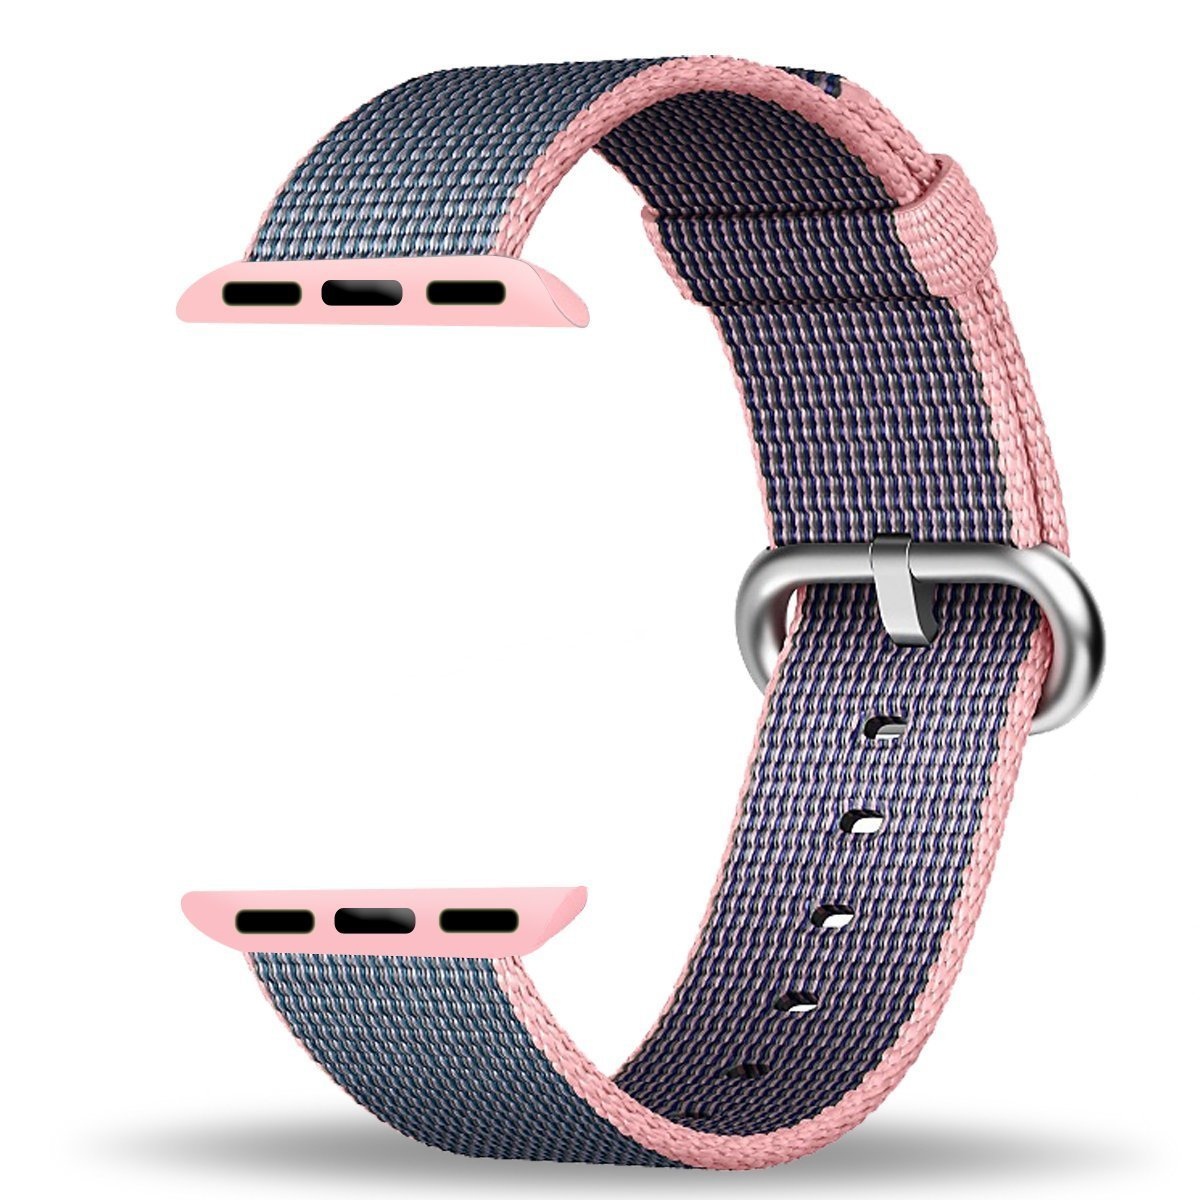 Apple Watch Band Series 1 Series 2, TitanFan Newest Fine Woven Nylon Strap Replacement Wrist Band for 2016 Apple Watch iWatch (Light pink/midnight blue 38mm)